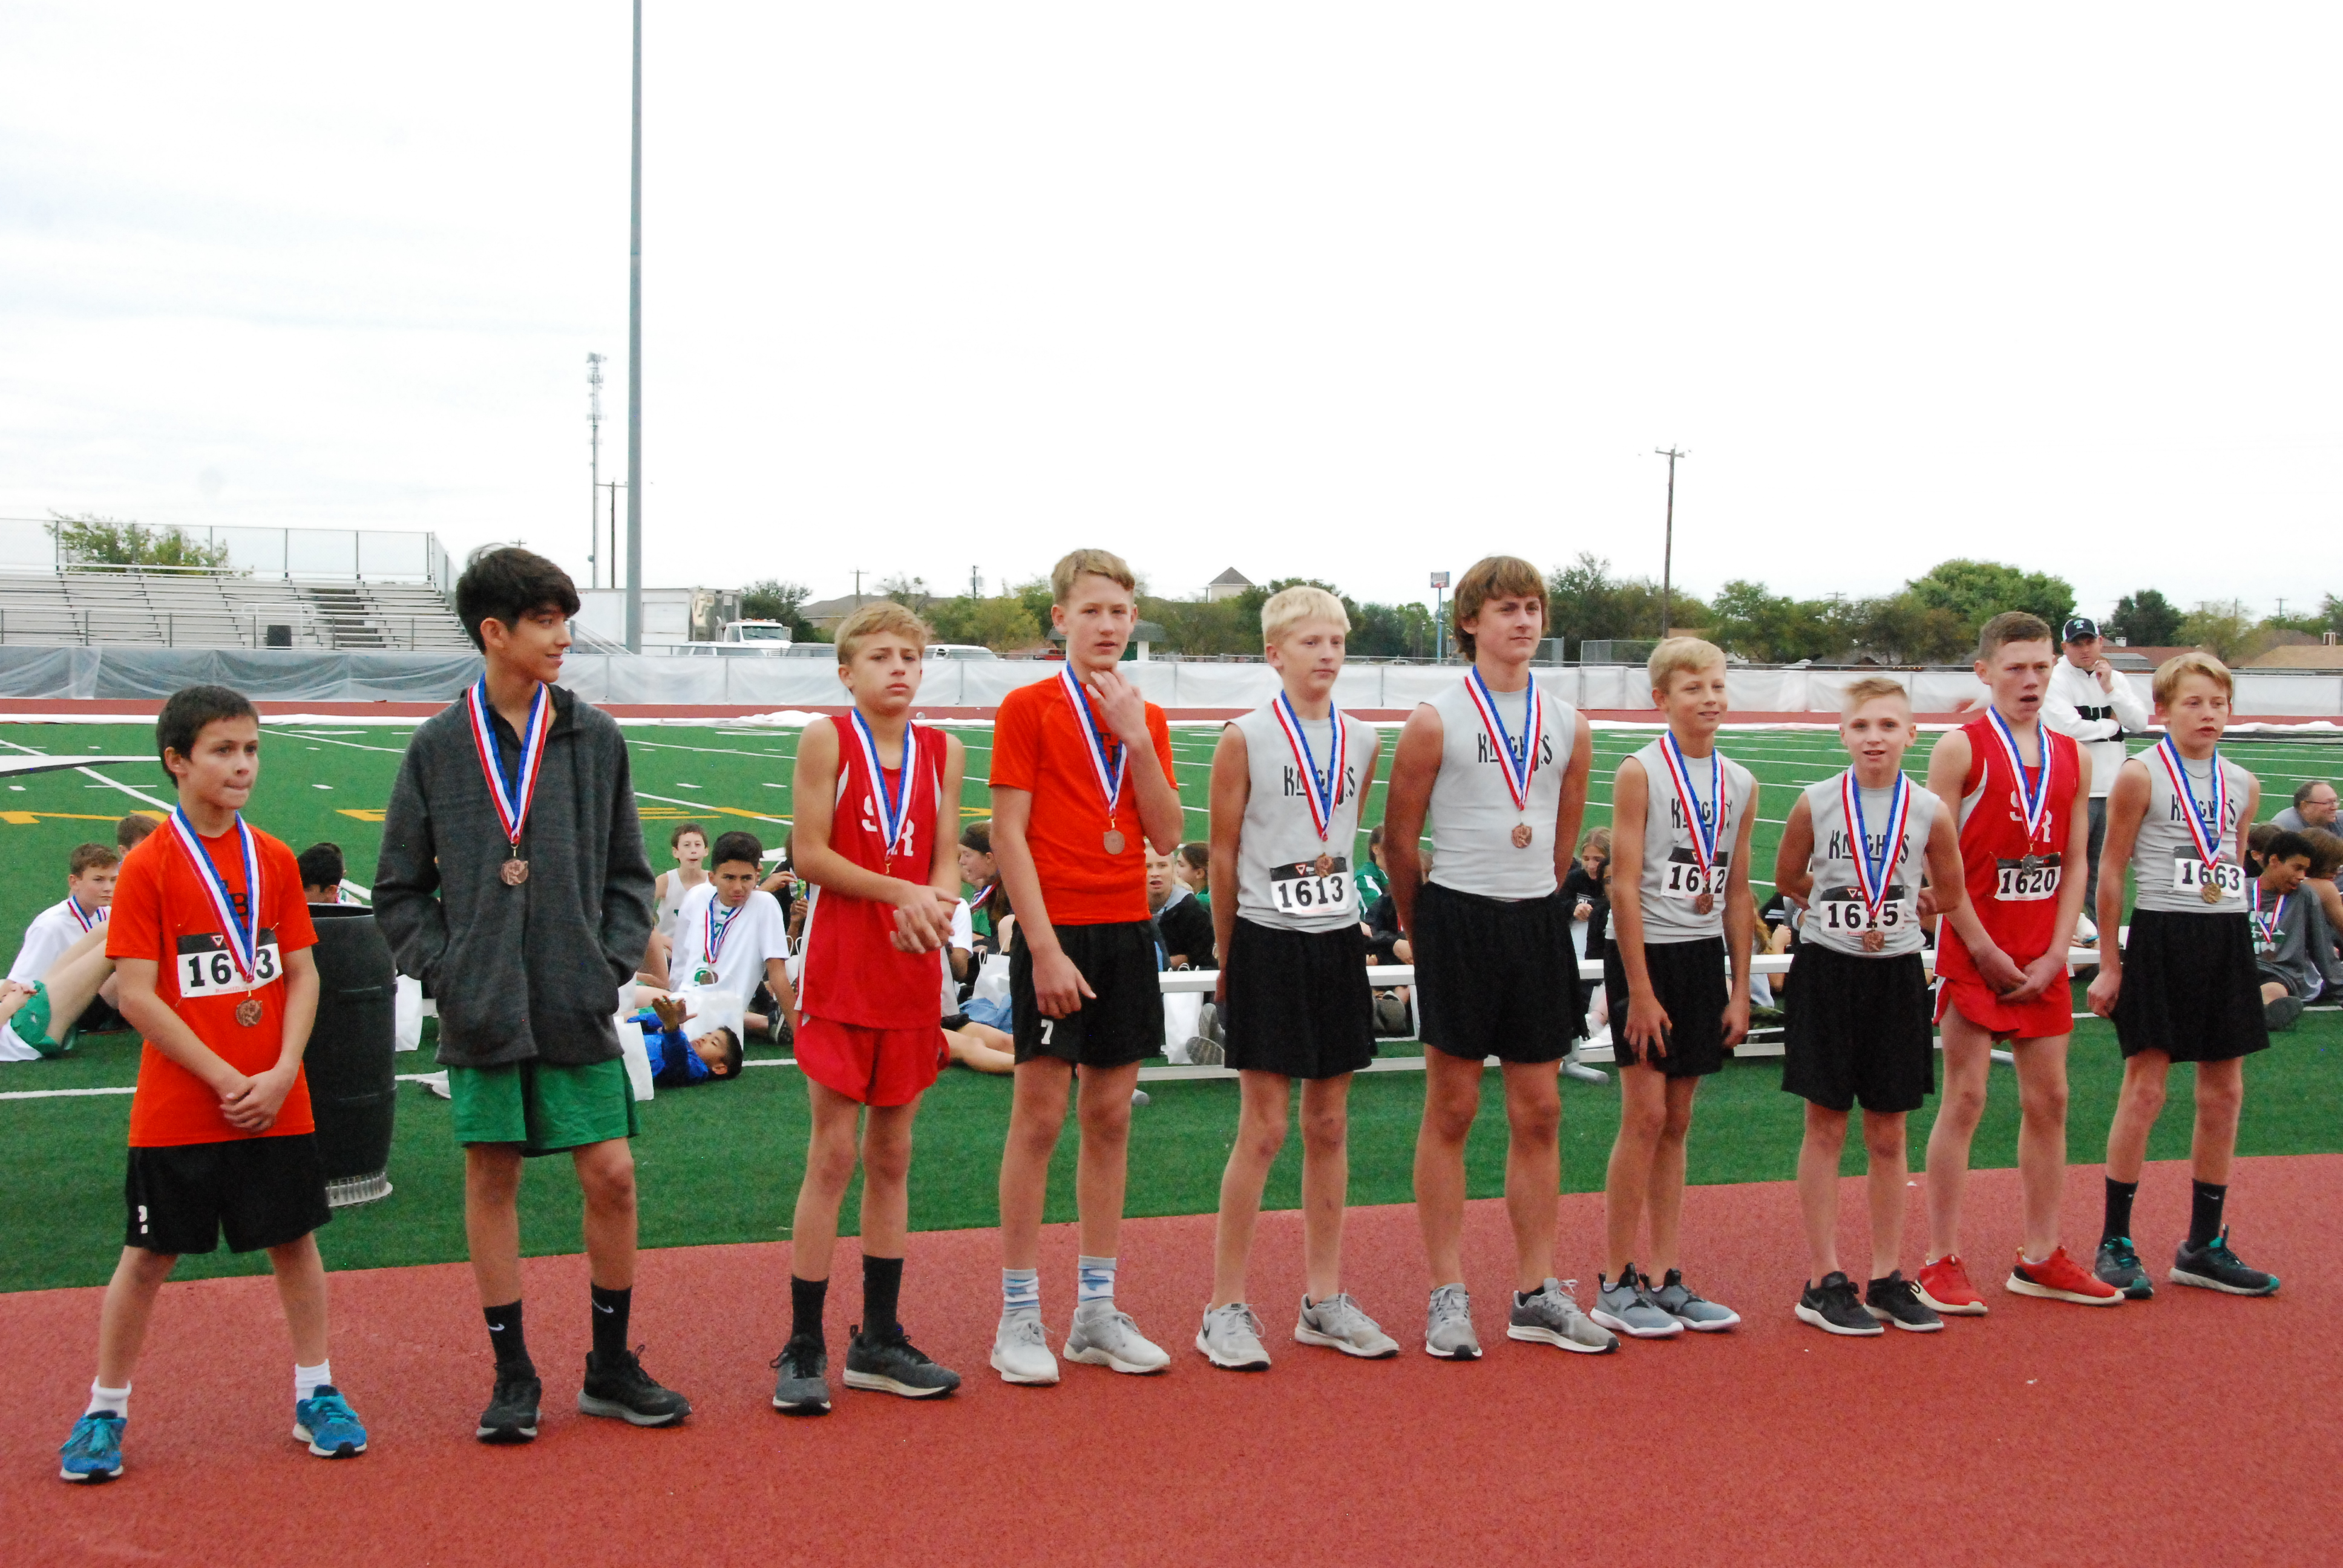 Middle School Boys Cross Country Team